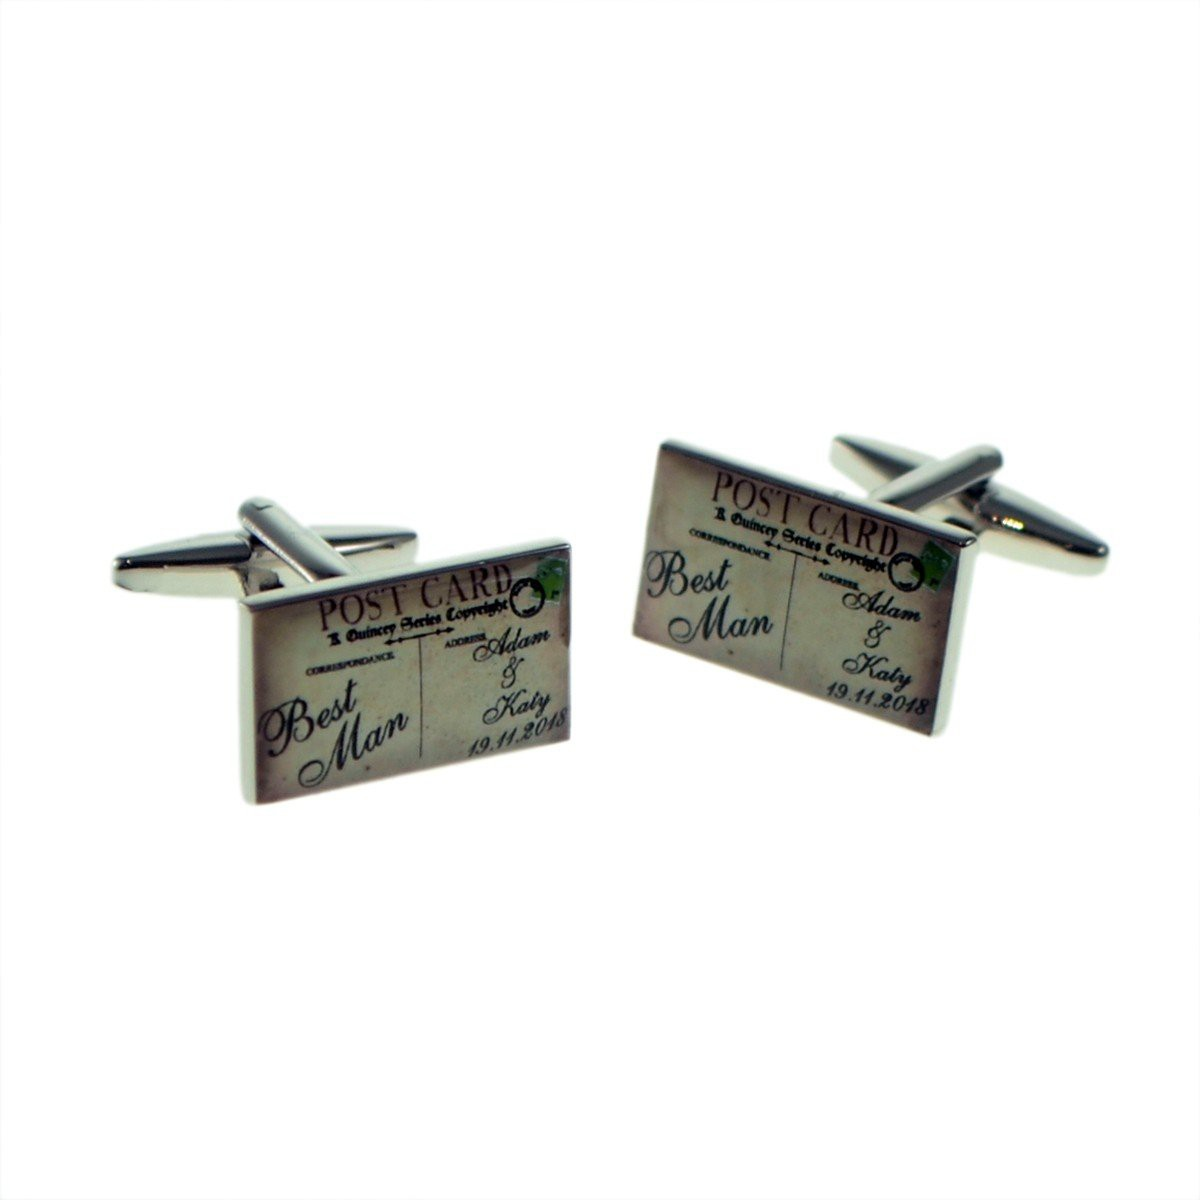 RETRO POST CARD STYLE PERSONALISED WEDDING CUFFLINKS £24.99